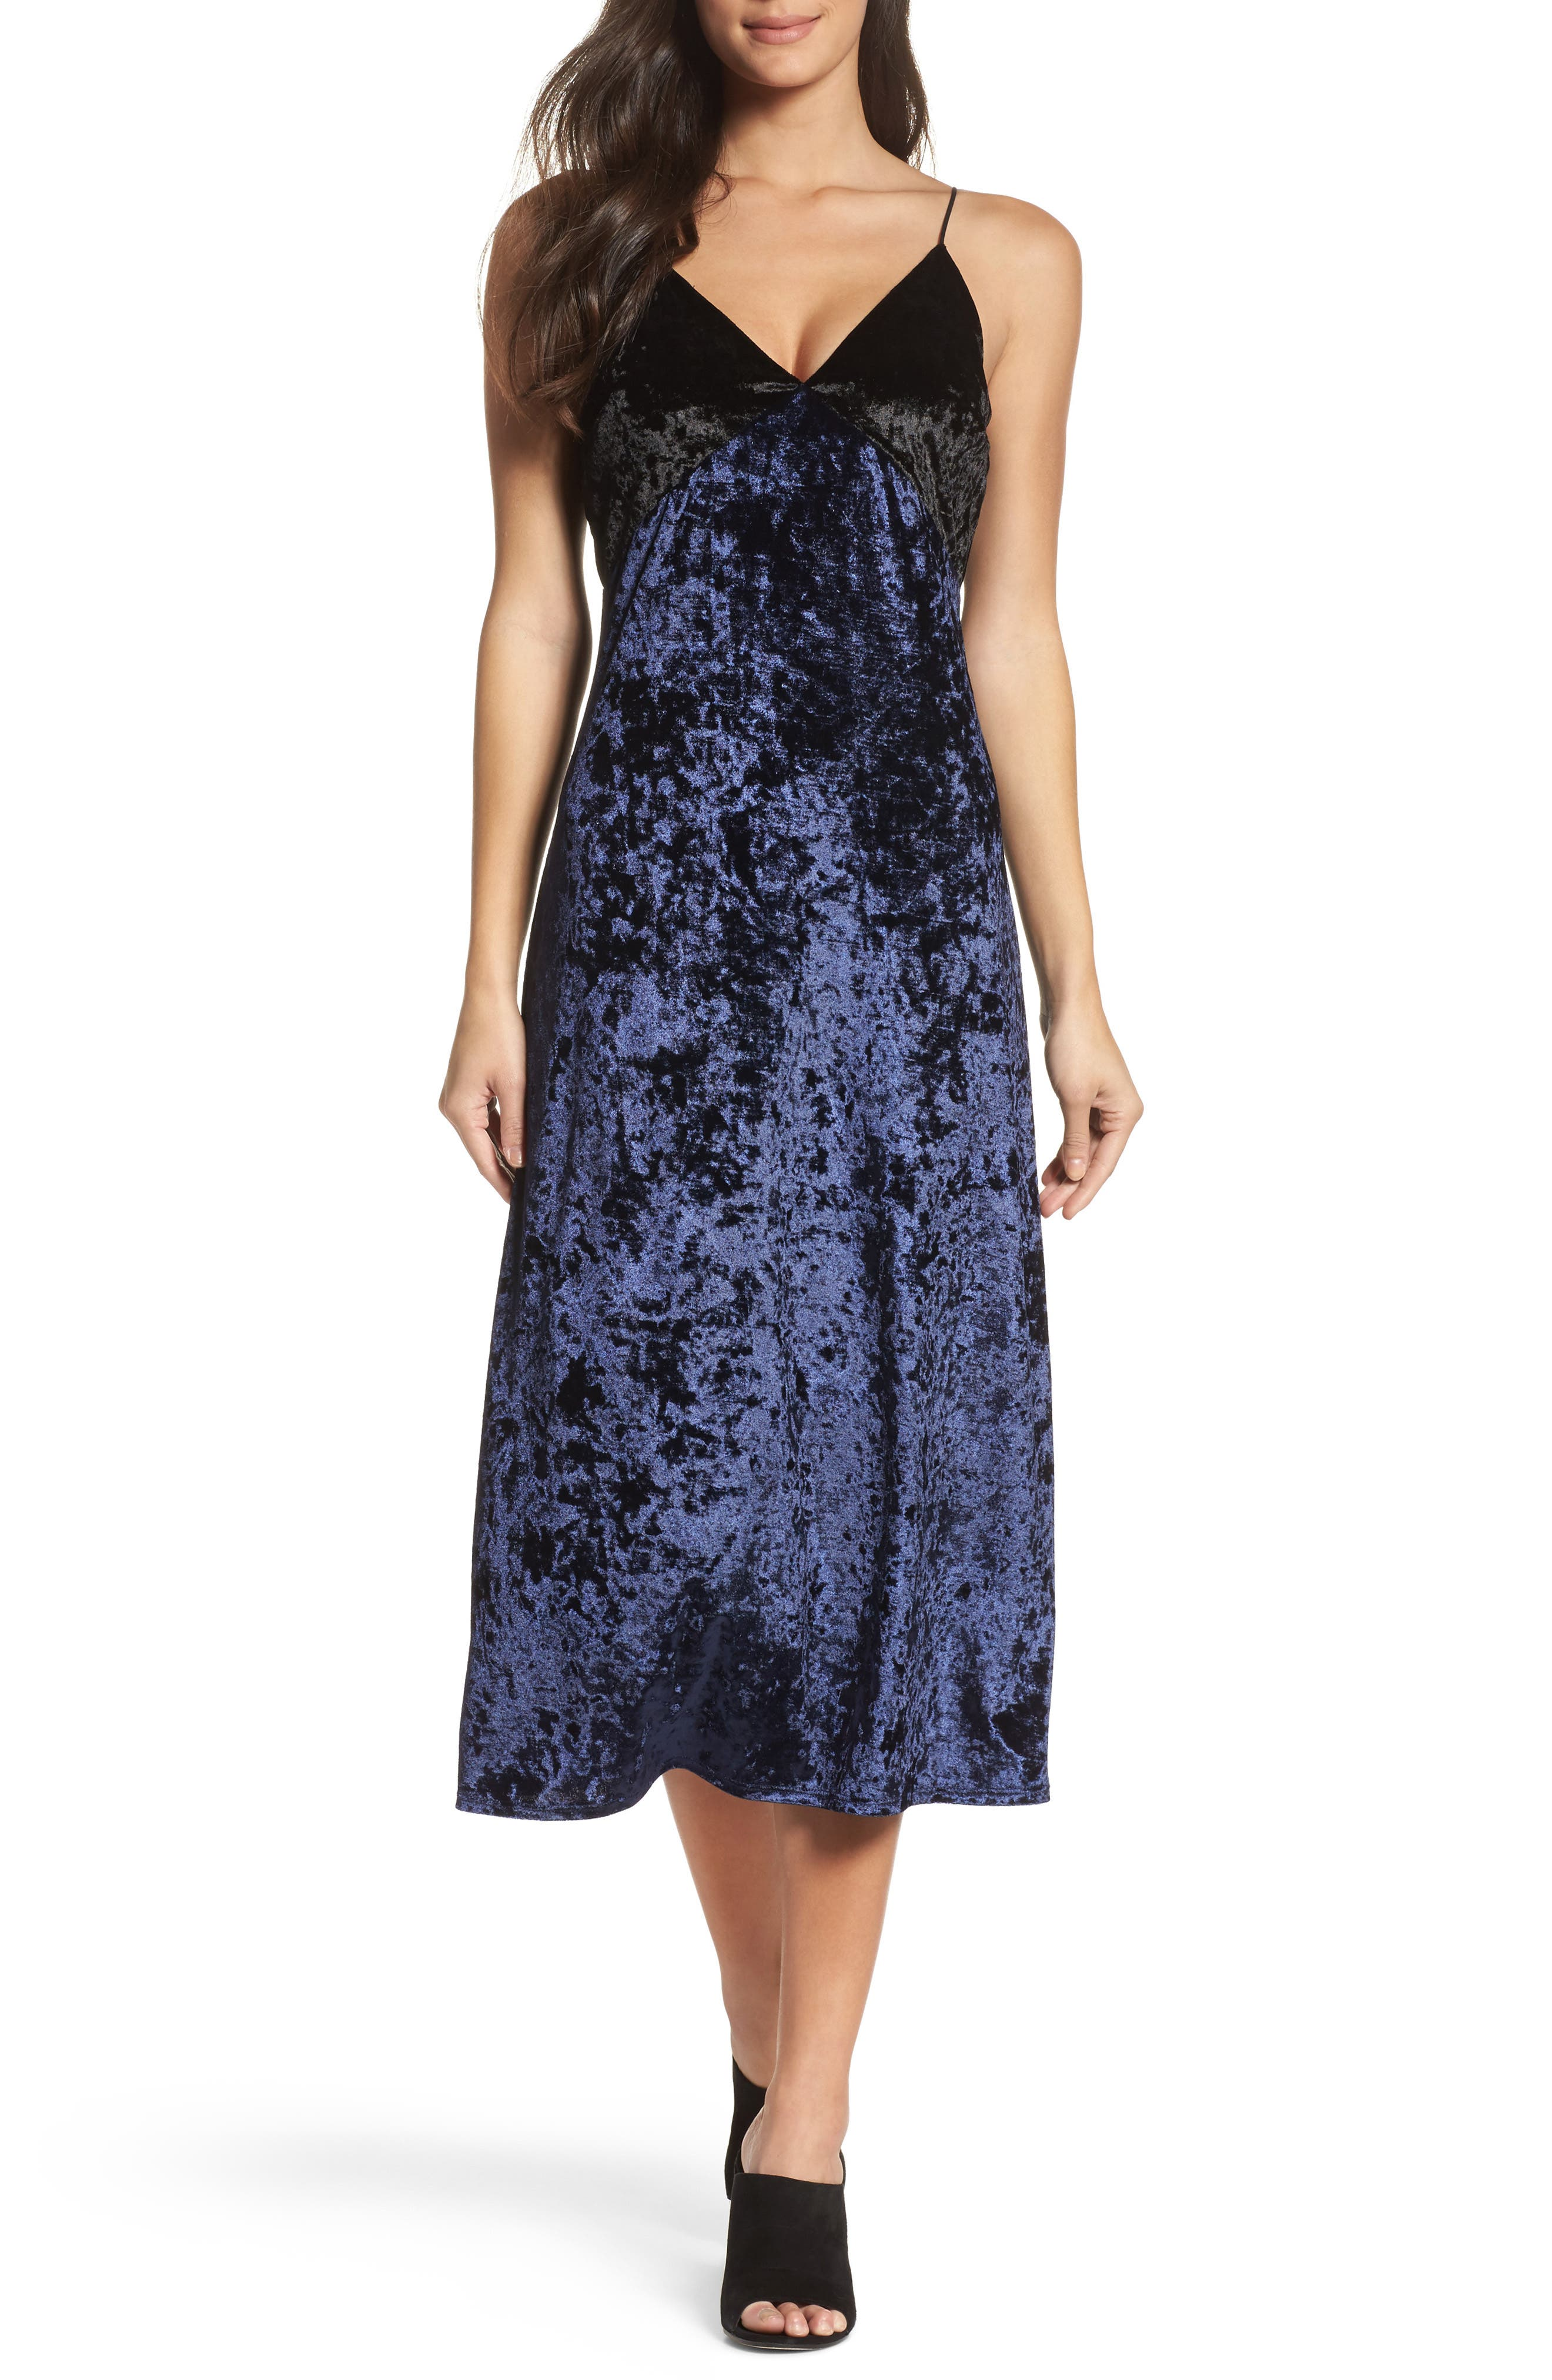 Crushed Velvet Slipdress,                         Main,                         color, Navy/ Black